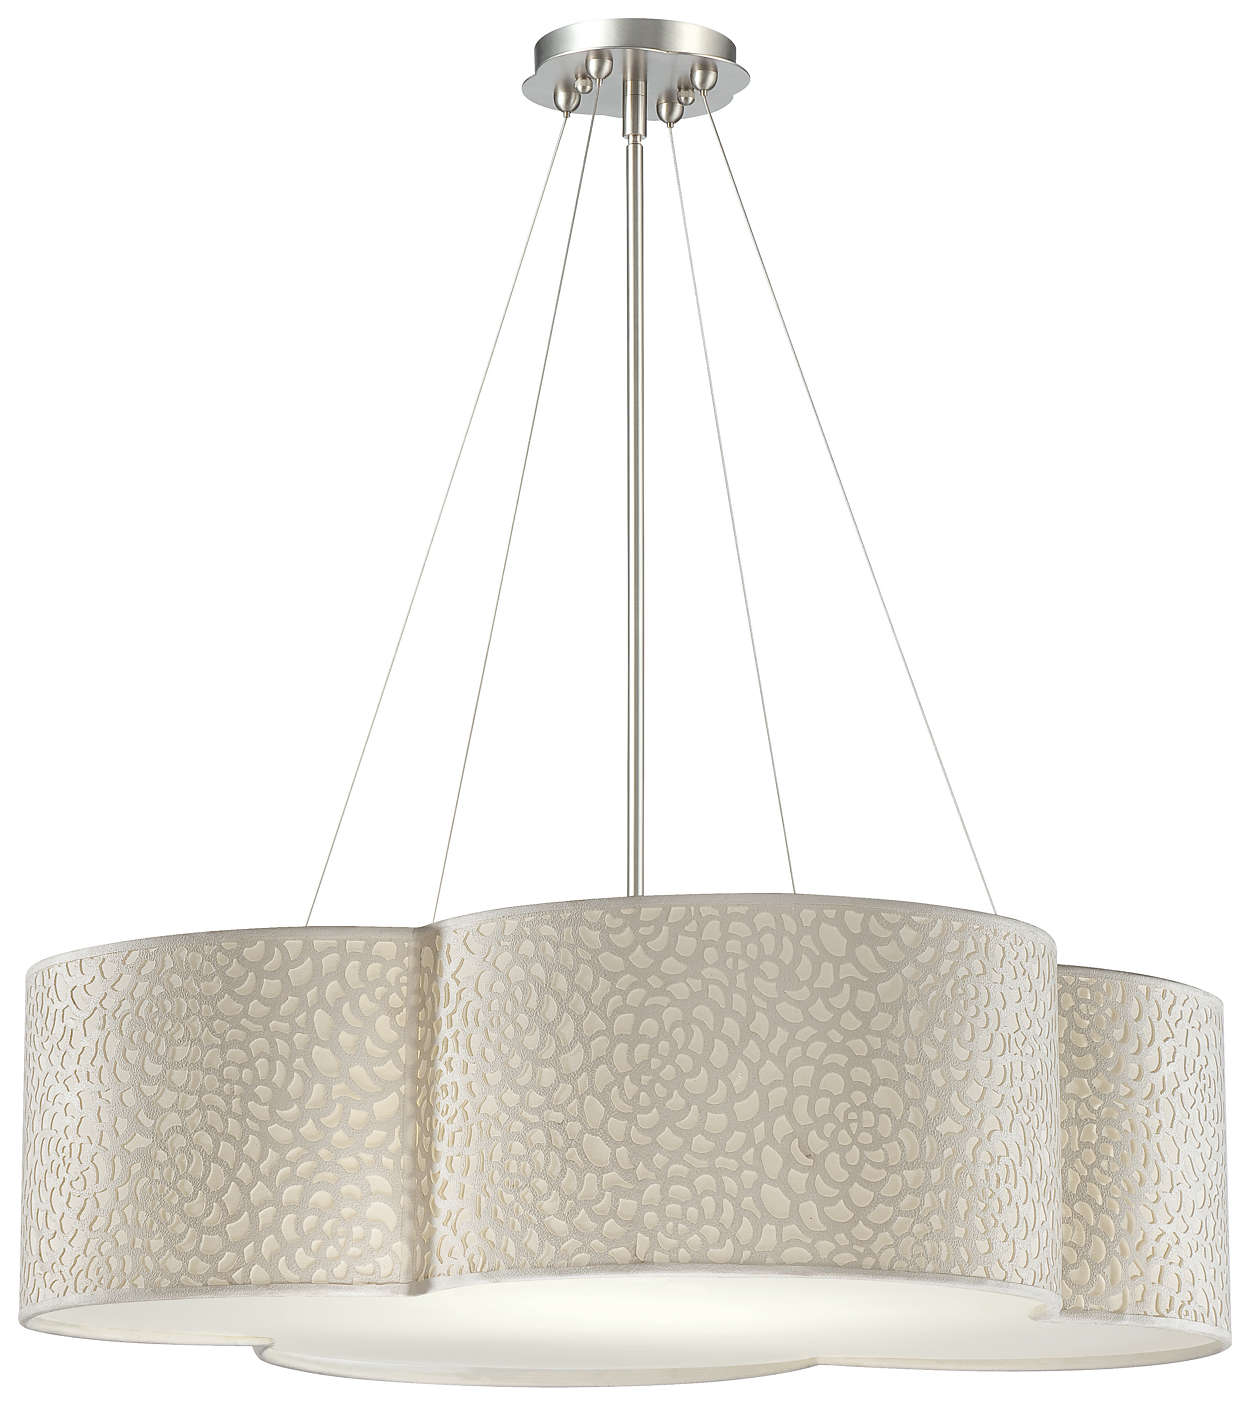 Noe 4-light Pendant in Satin Nickel finish